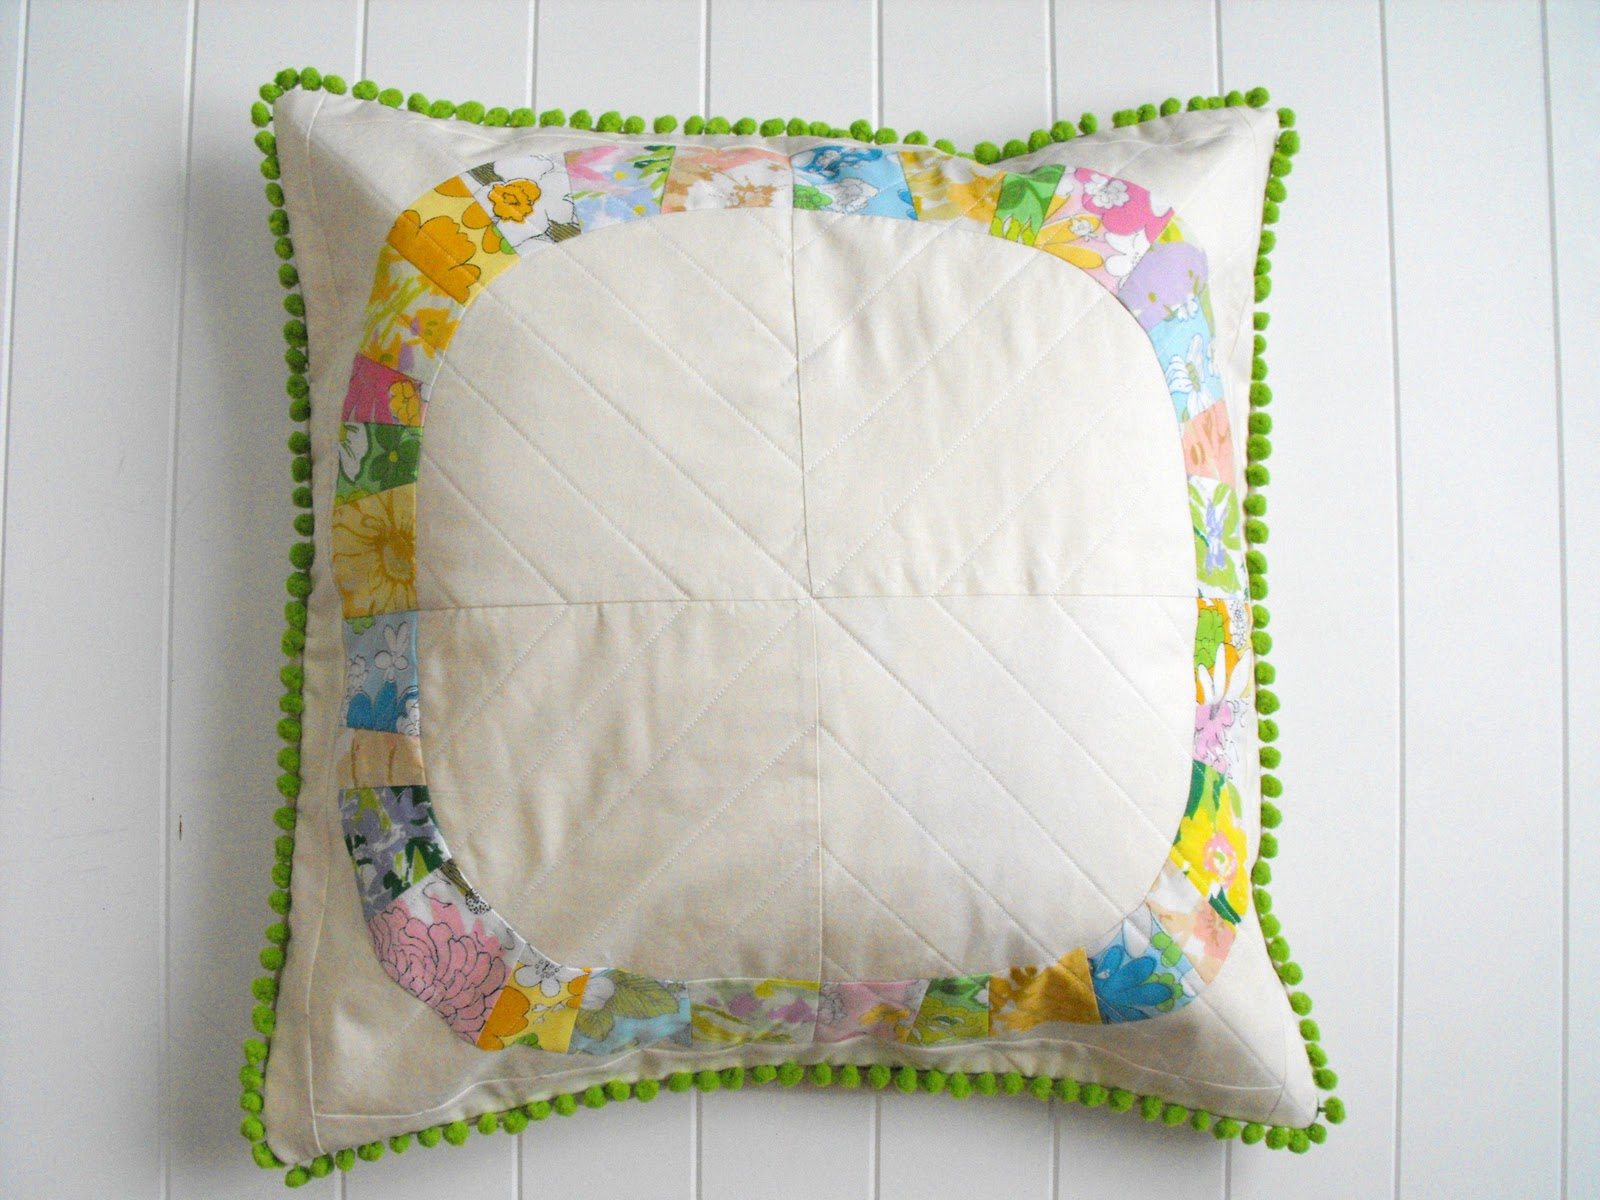 pillow single girls Image title: how to make a throw pillow cover in six simple steps single girl s diy with your own pillows plan 13 filename: .